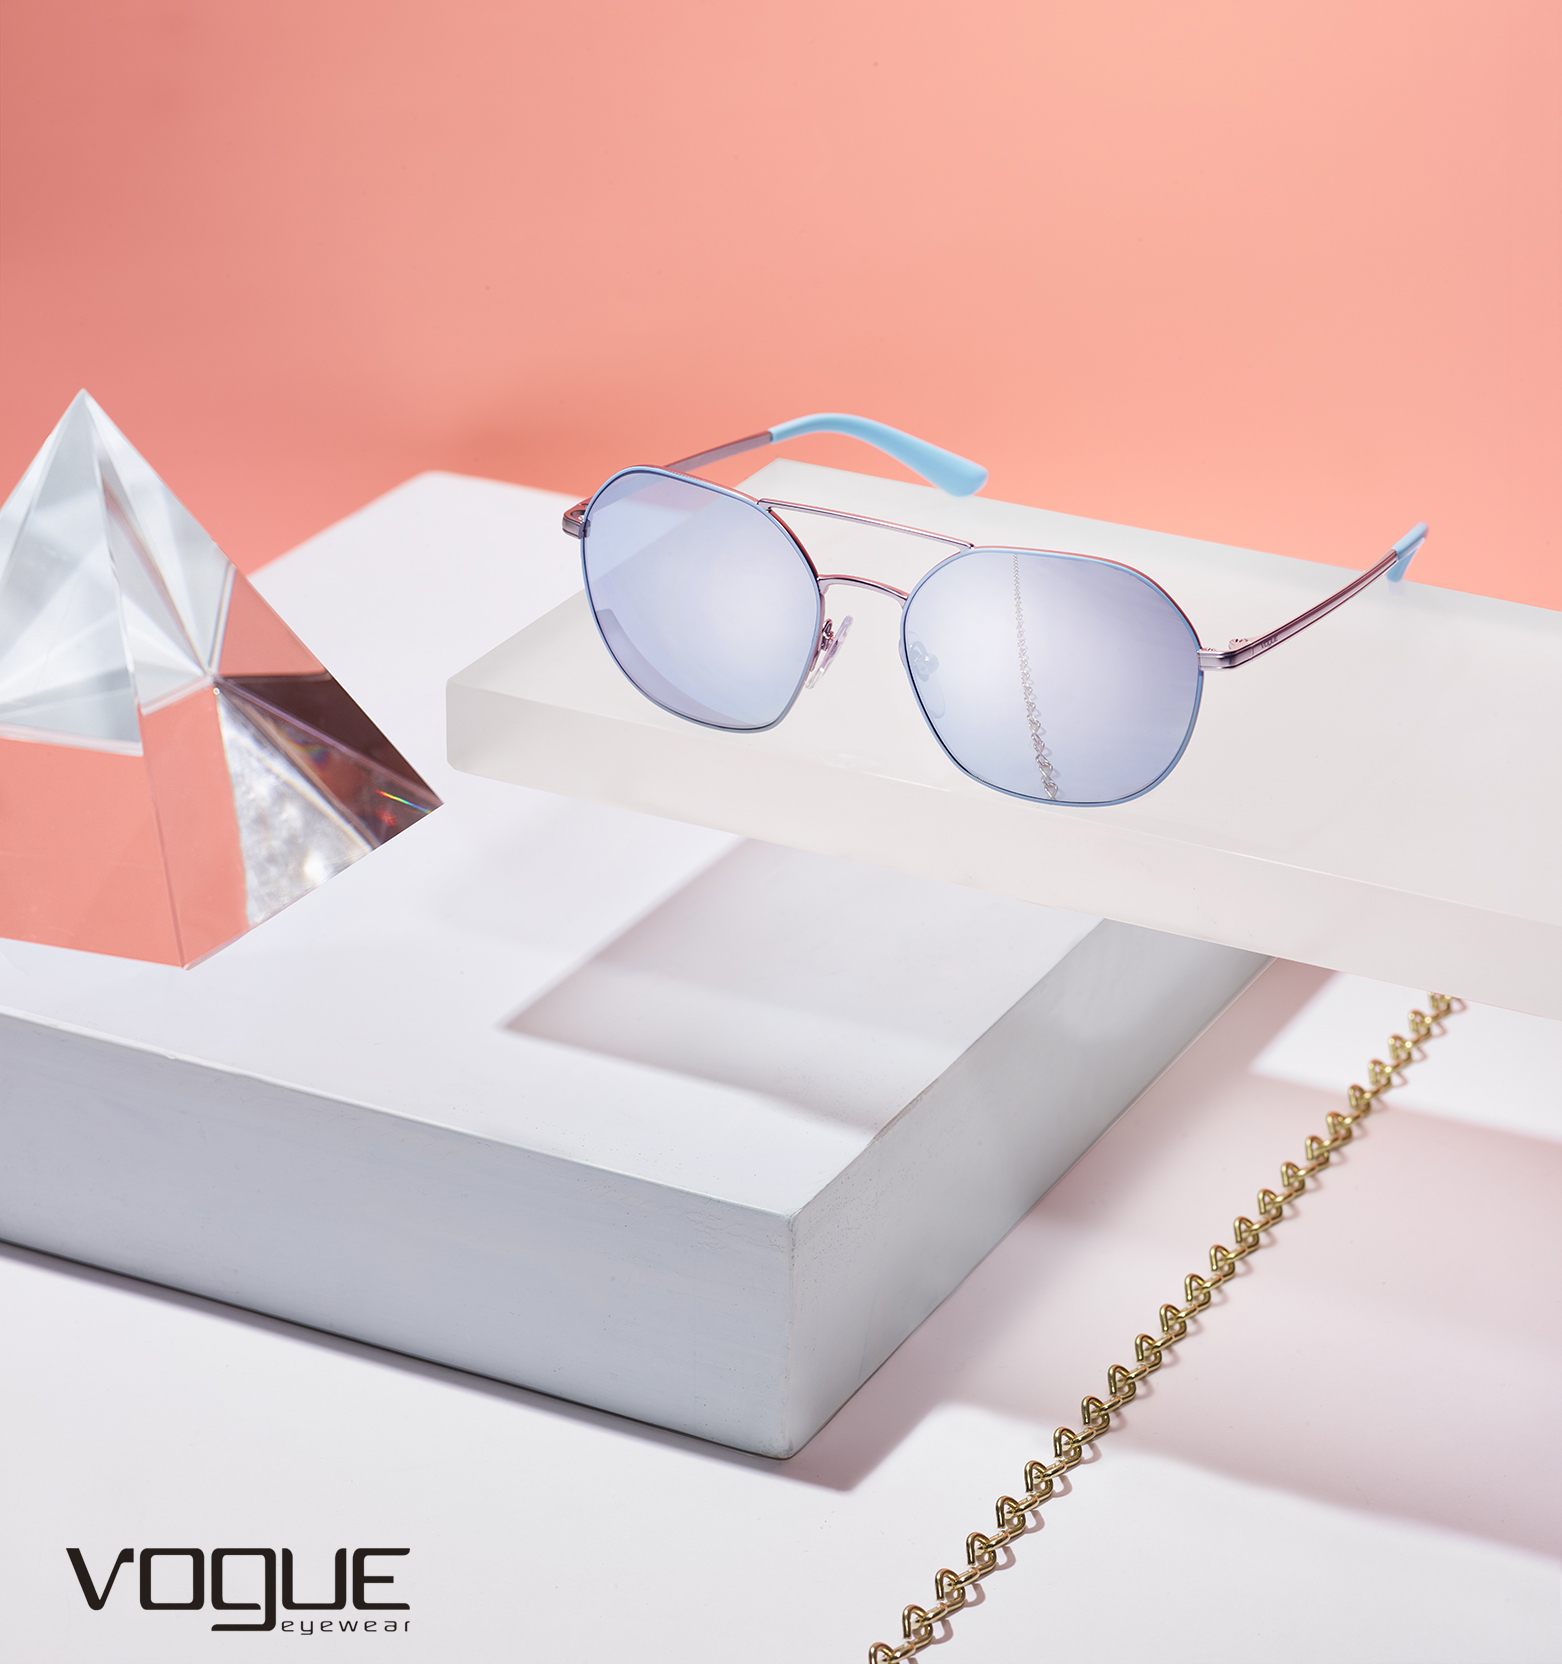 flat2016_NOV_7_VOGUE_EYEWEAR_REFINERY29_ShanaNovak_COMP9 copy.jpg